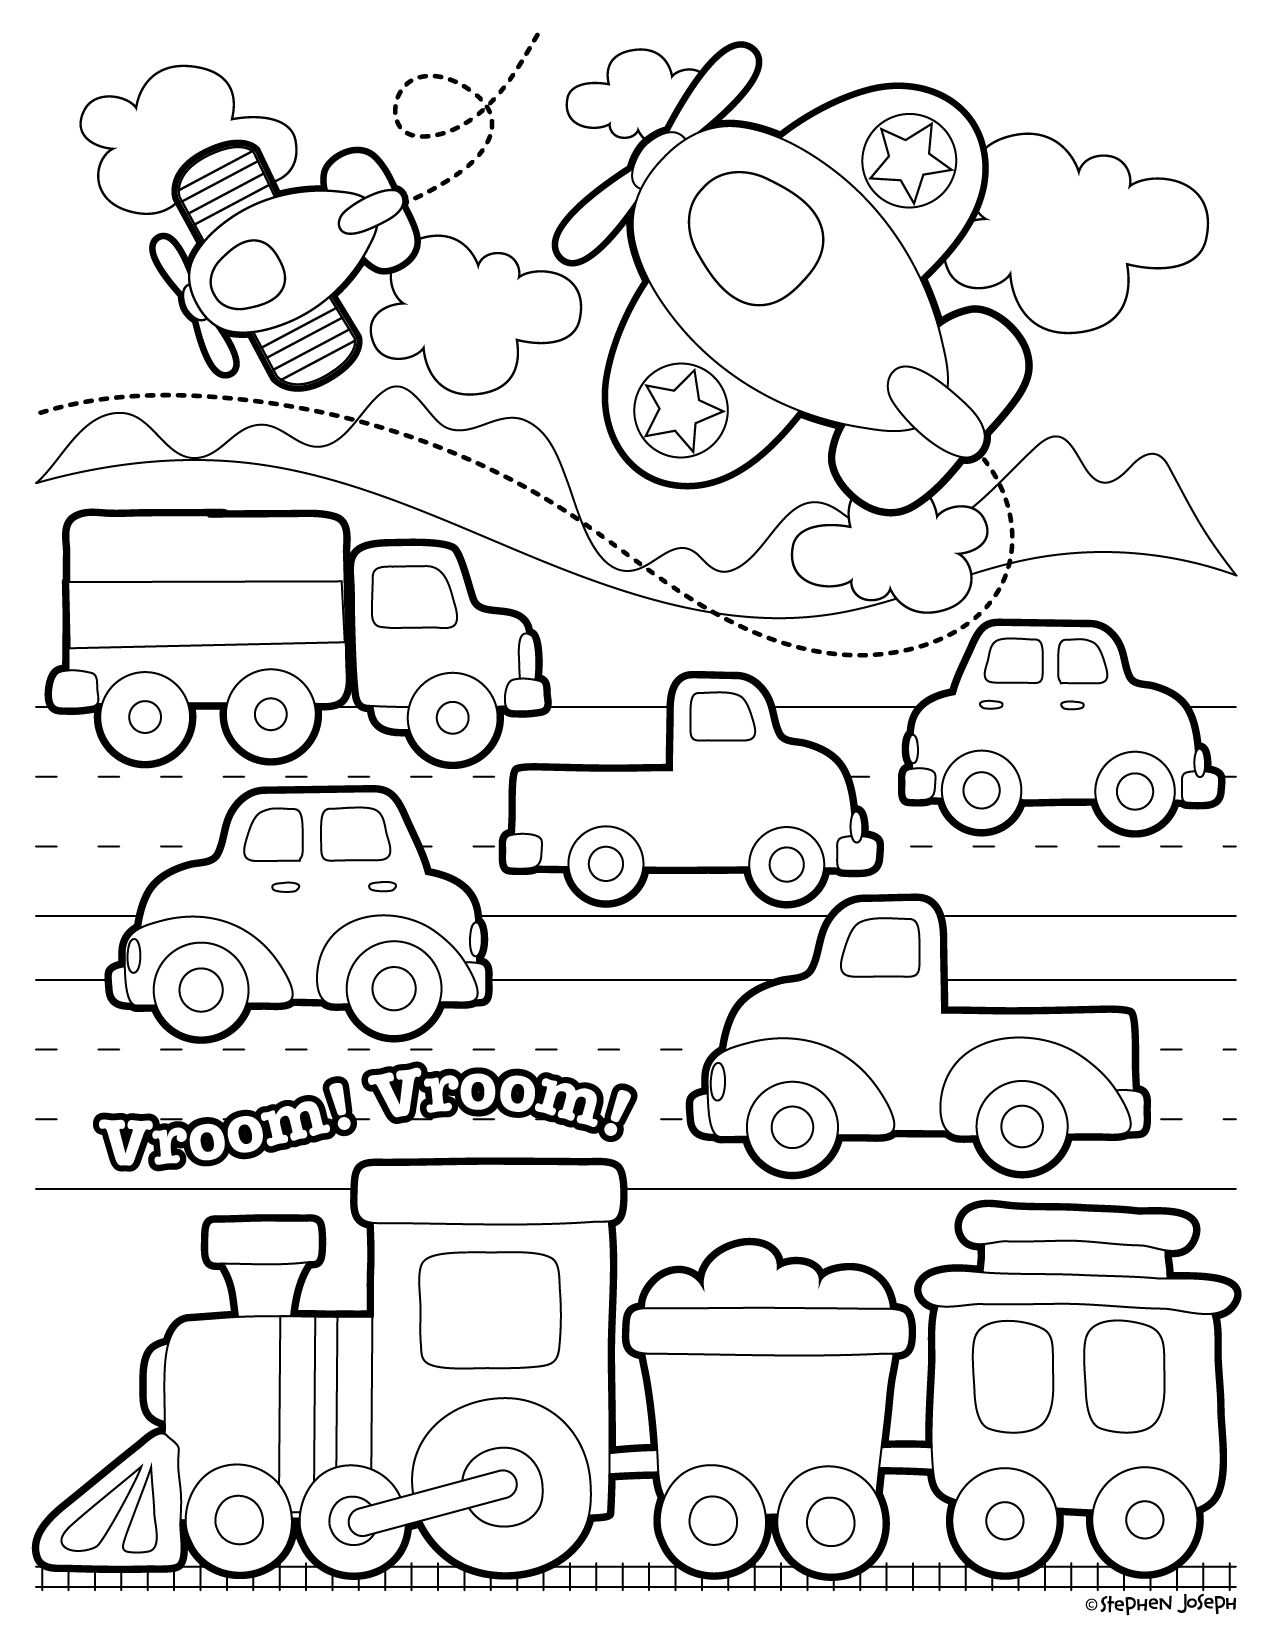 Transportation Coloring Page Printable Free By Stephen Joseph